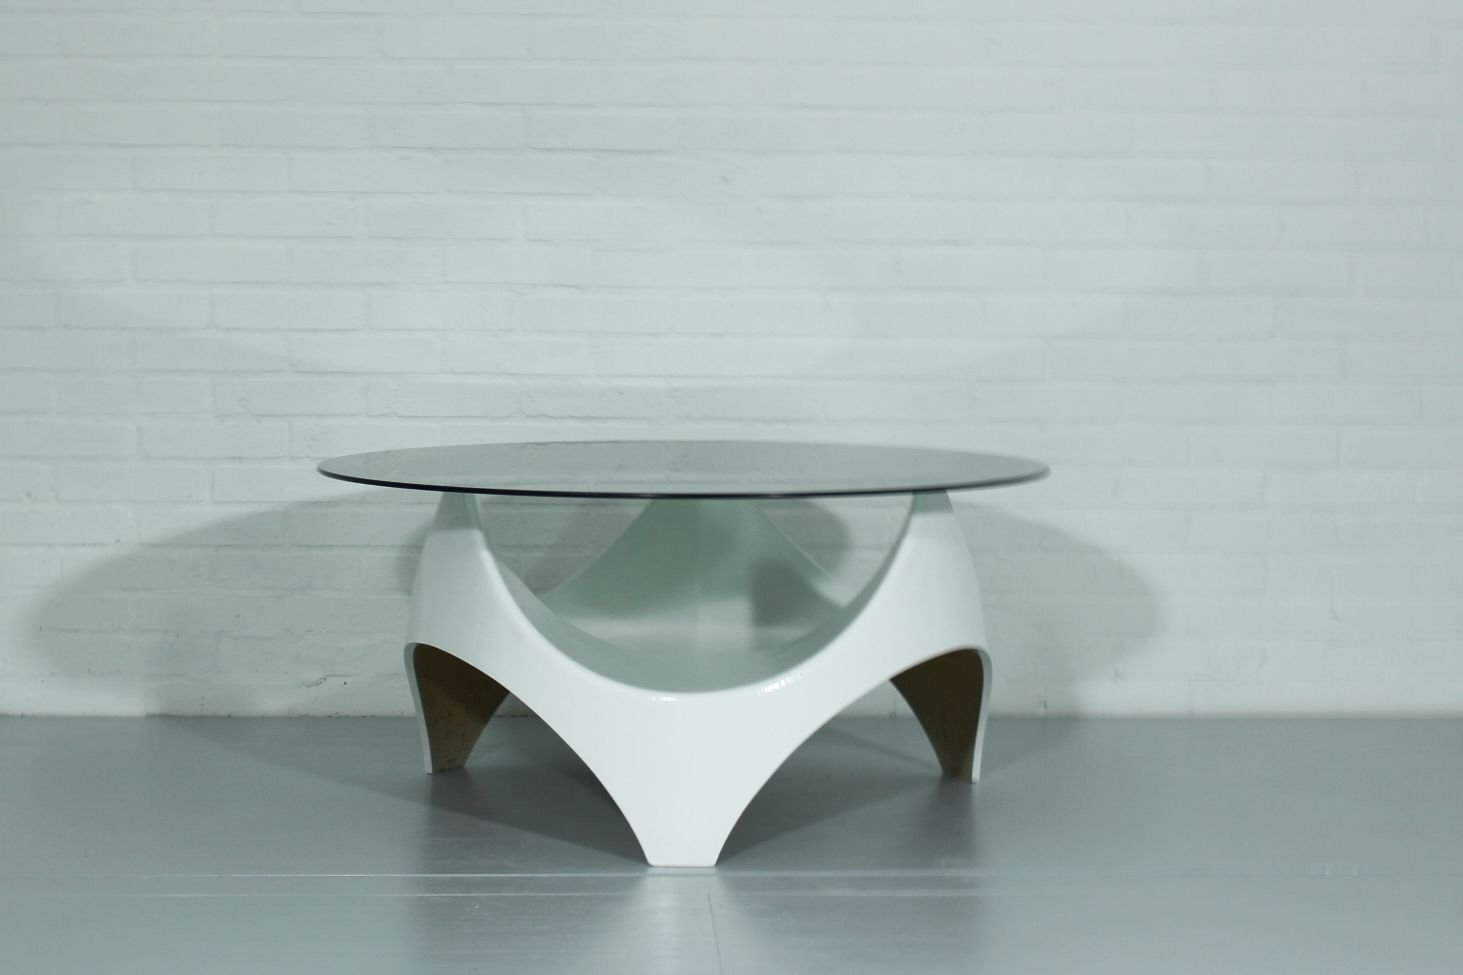 Vintage dutch spage age coffee table for sale at pamono for Prem table 99 00